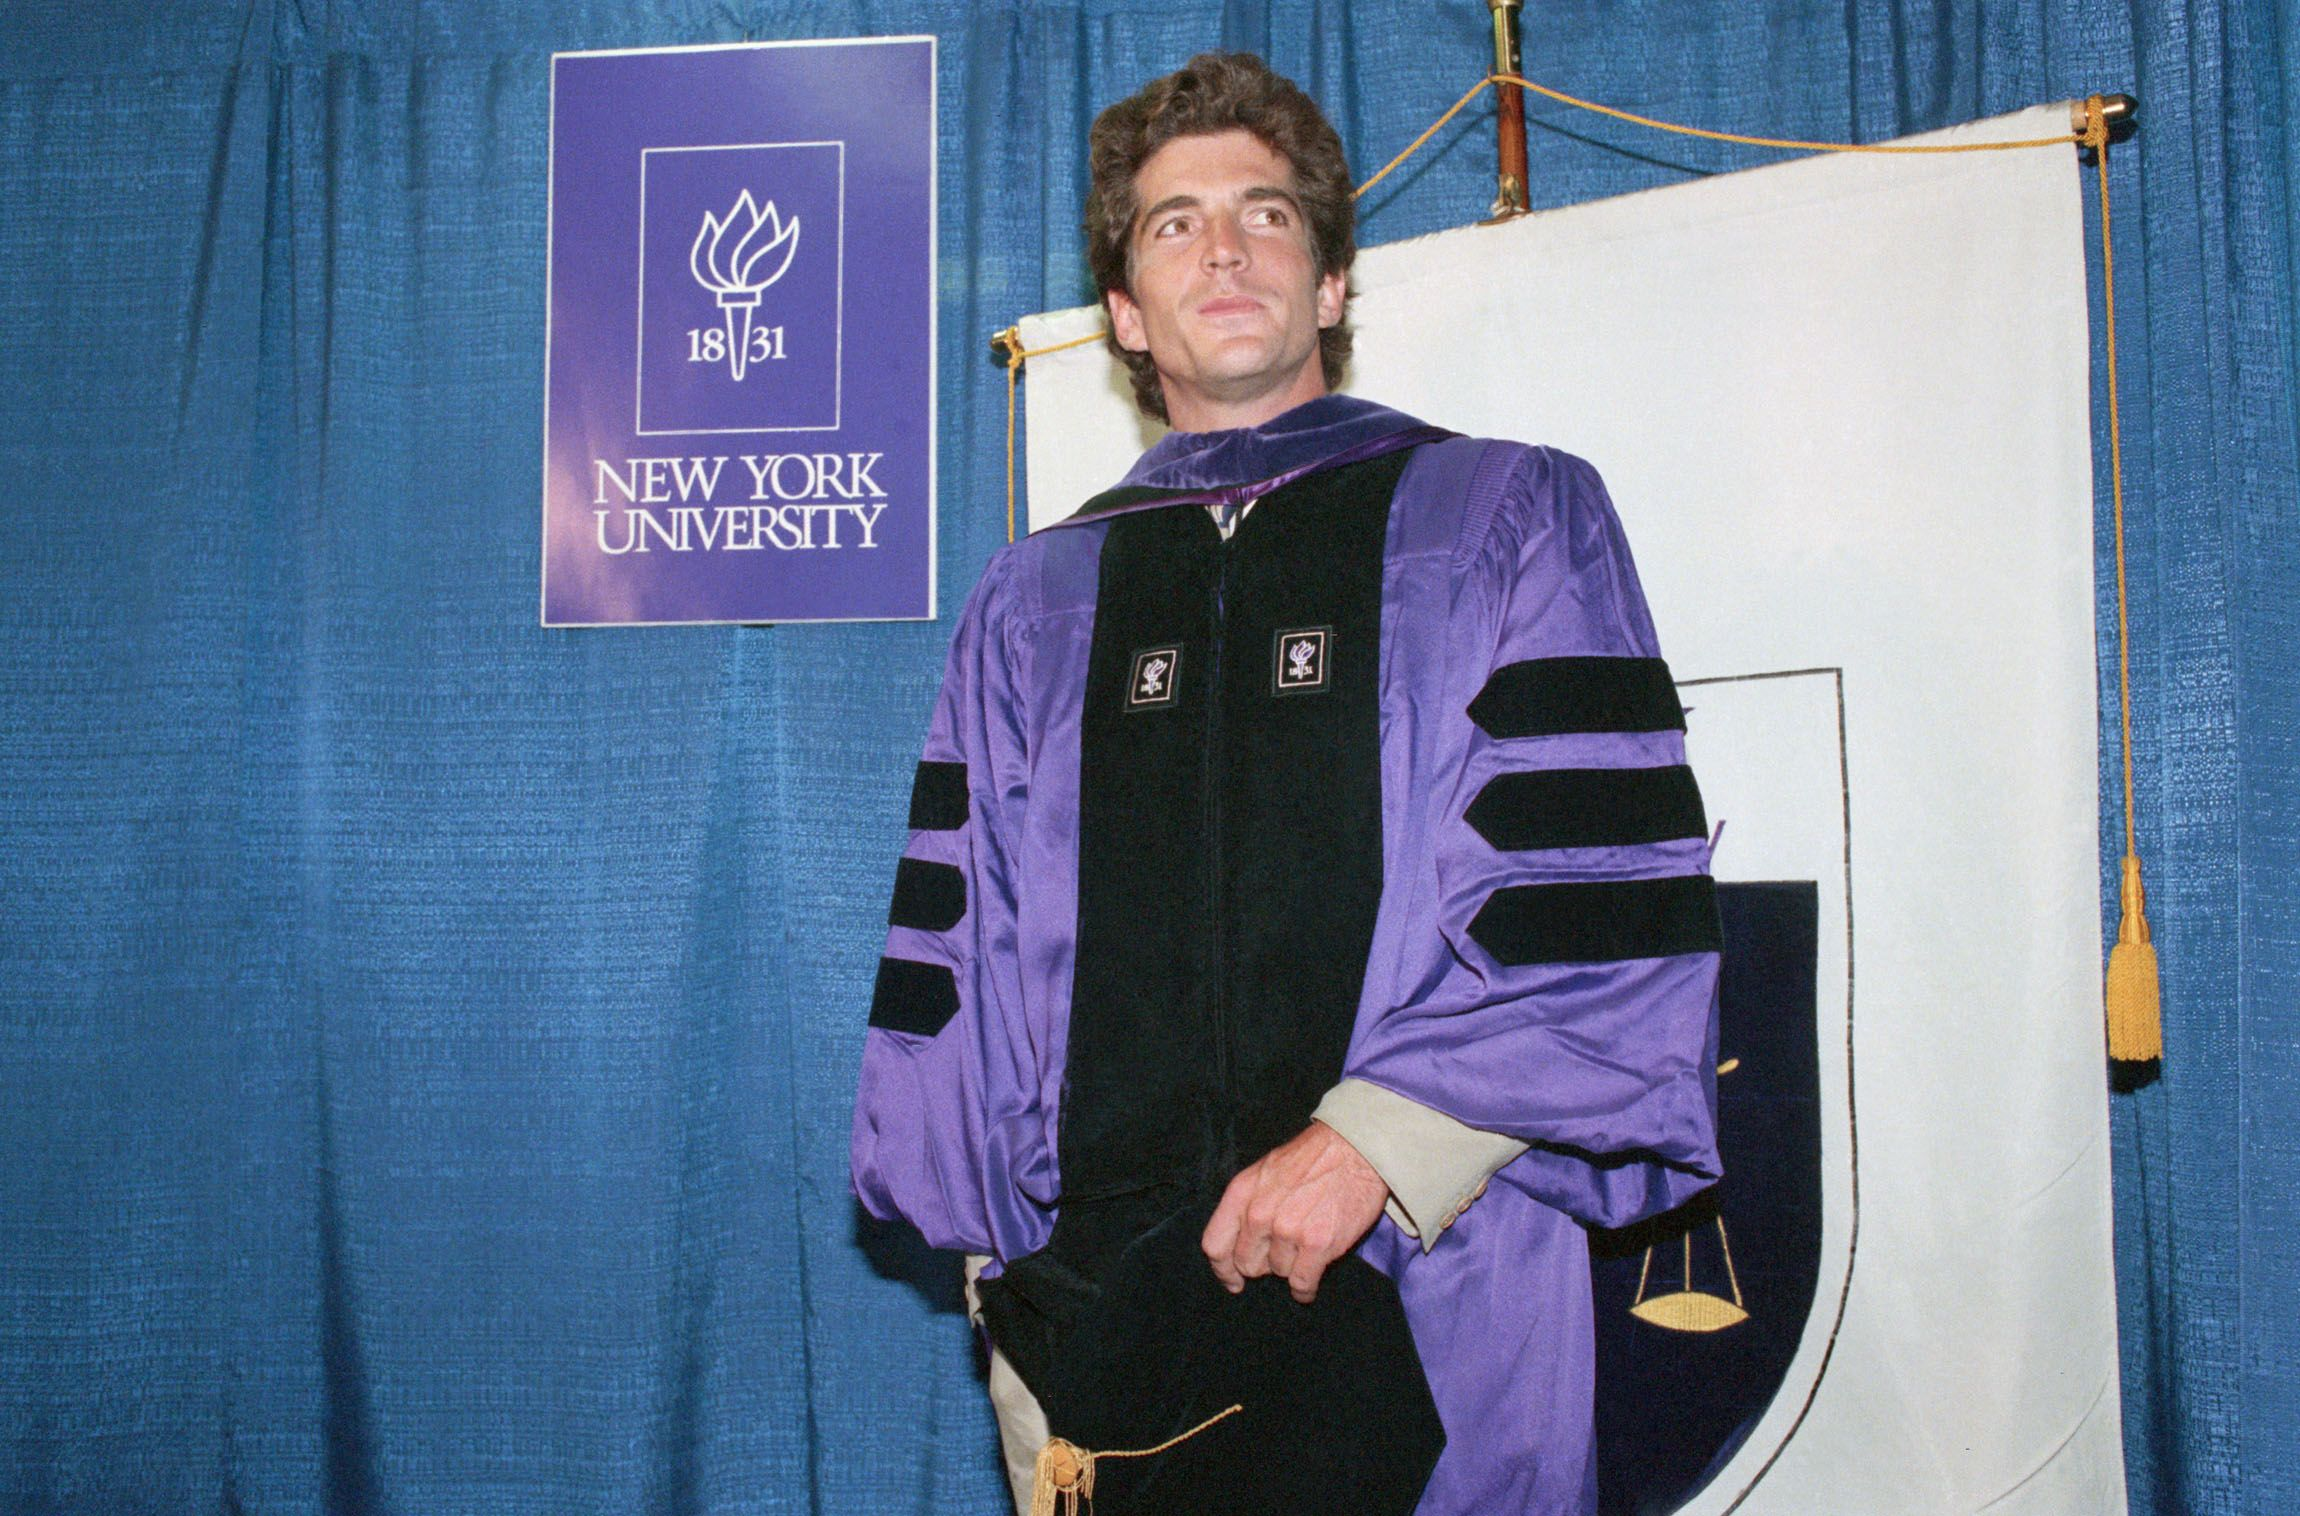 Twenty-eight-year-old John F. Kennedy Jr. poses in his gown at graduation exercises for the New York University Law School on May 19, 1989.